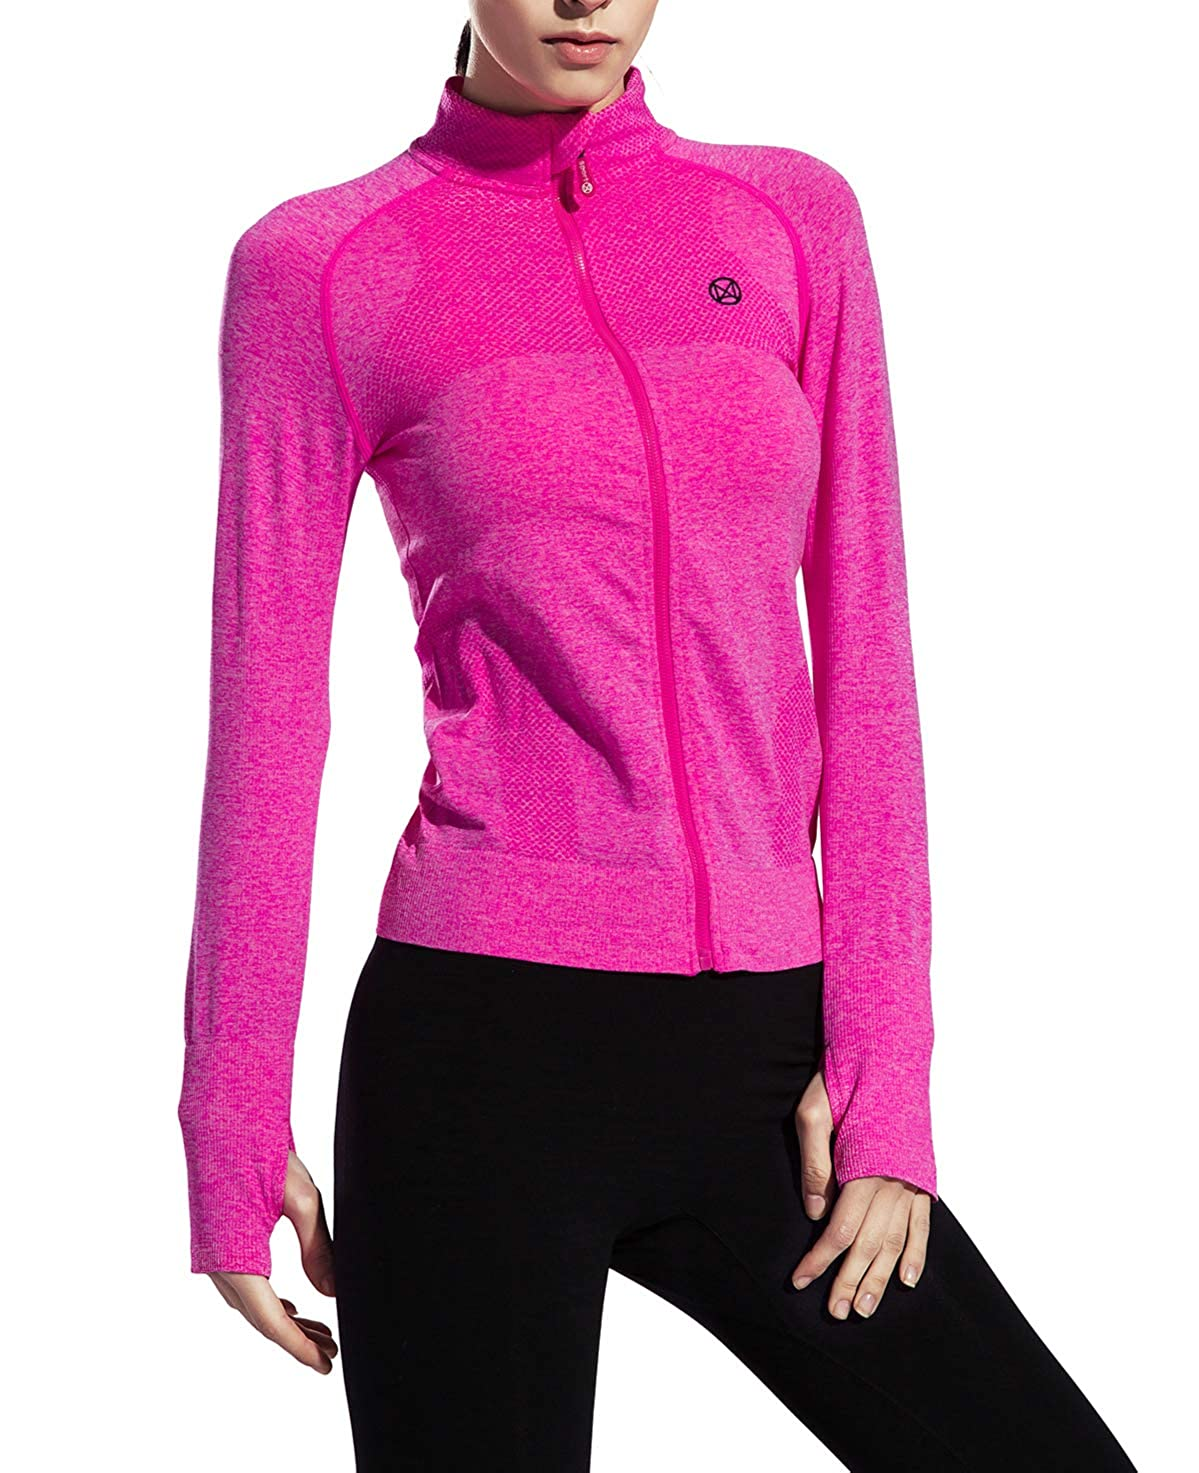 Slimour Women Long Sleeve Compression Yoga Tops Track Jerseys Running Jackets Performance zz_fy_LC_0925US05